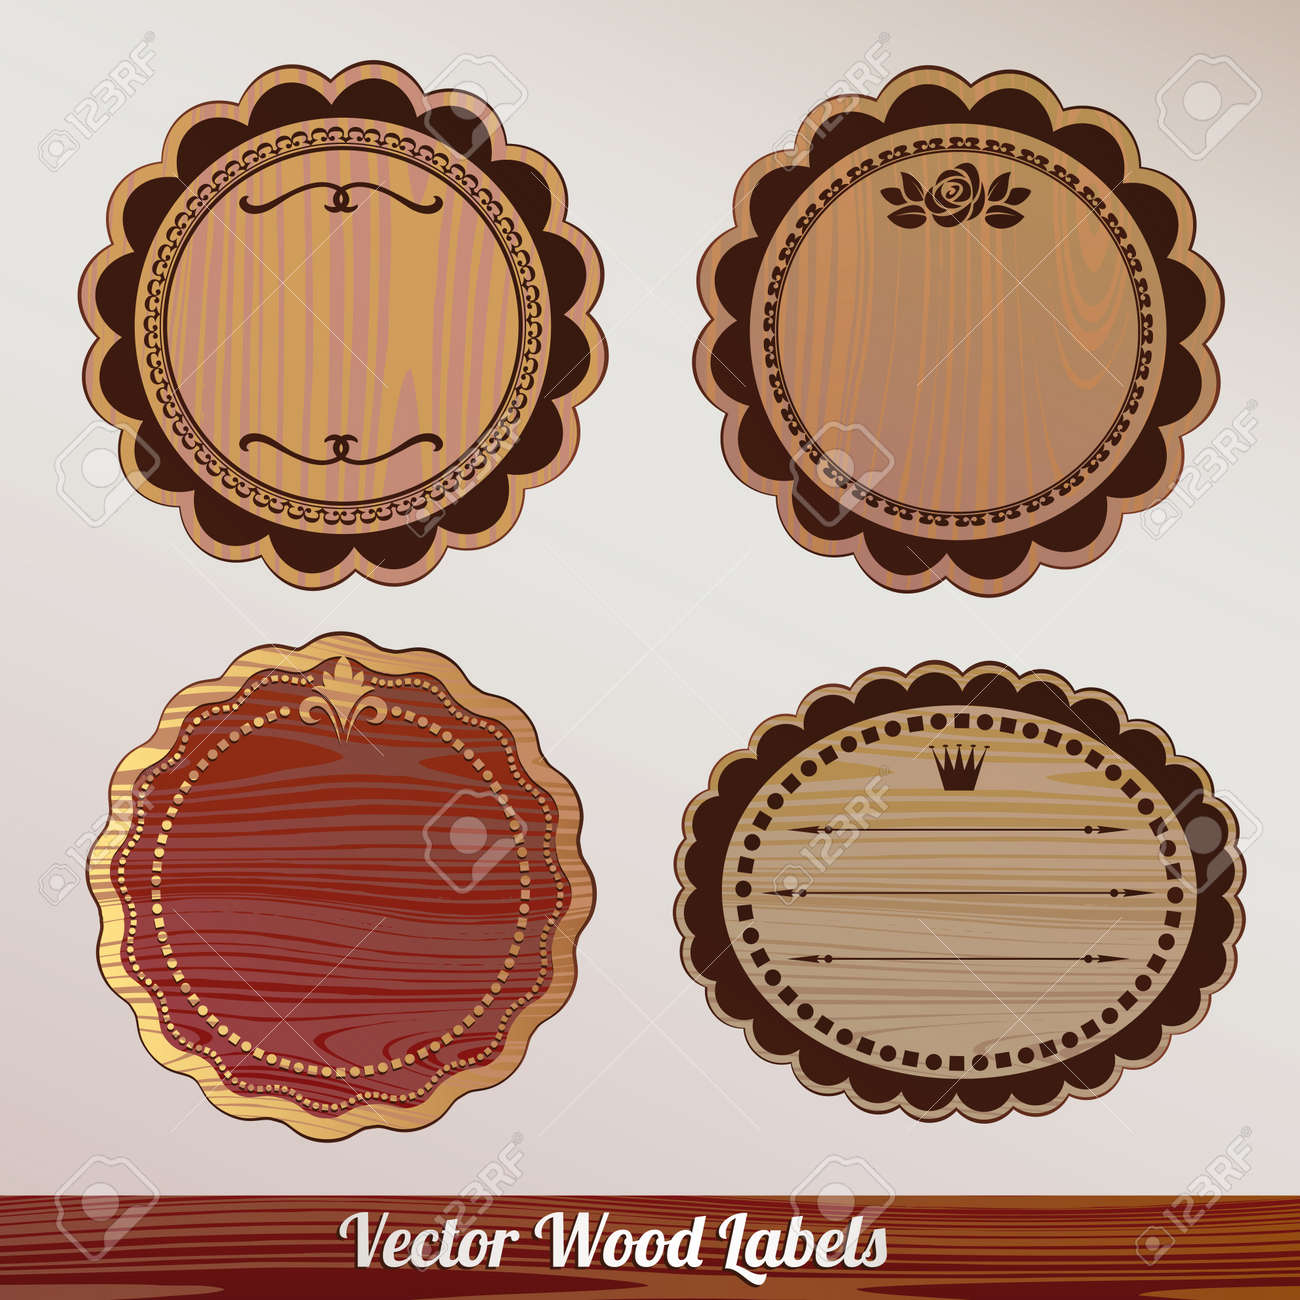 Vector wooden label Set ornamental vintage Stock Vector - 14981481